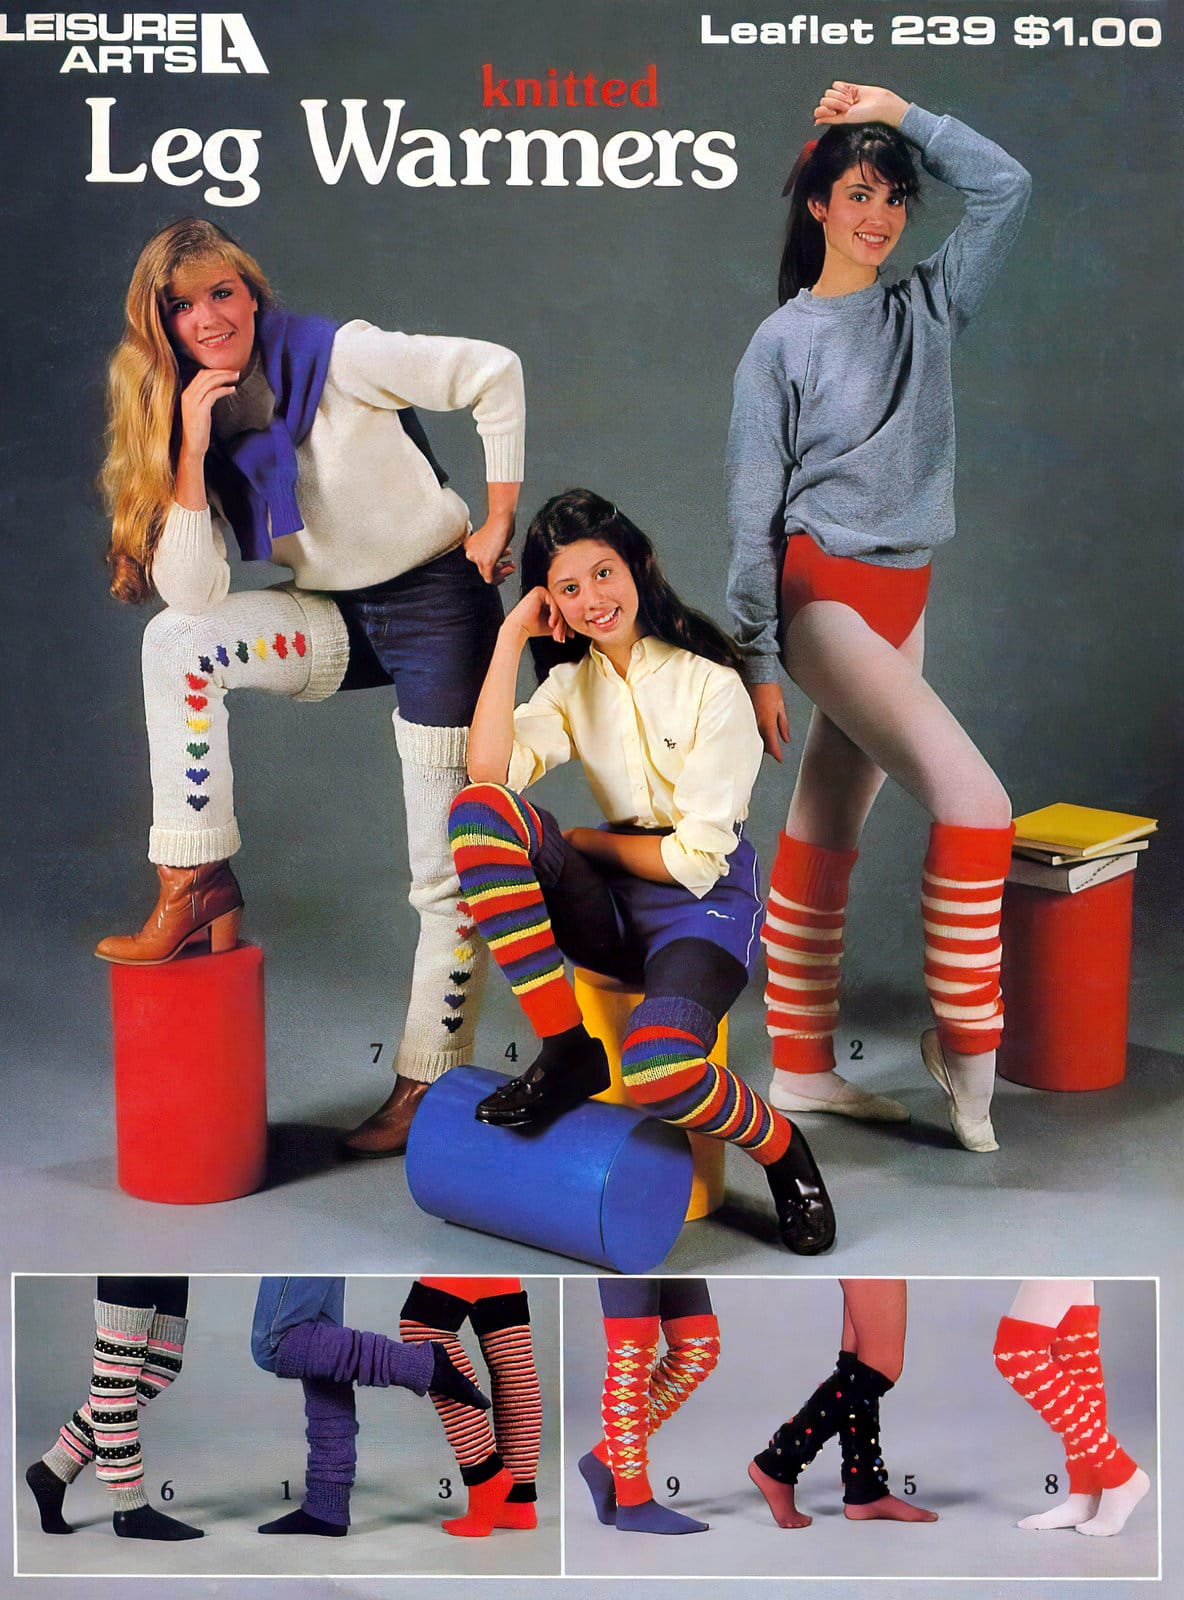 Knitted leg warmers how-to 1982